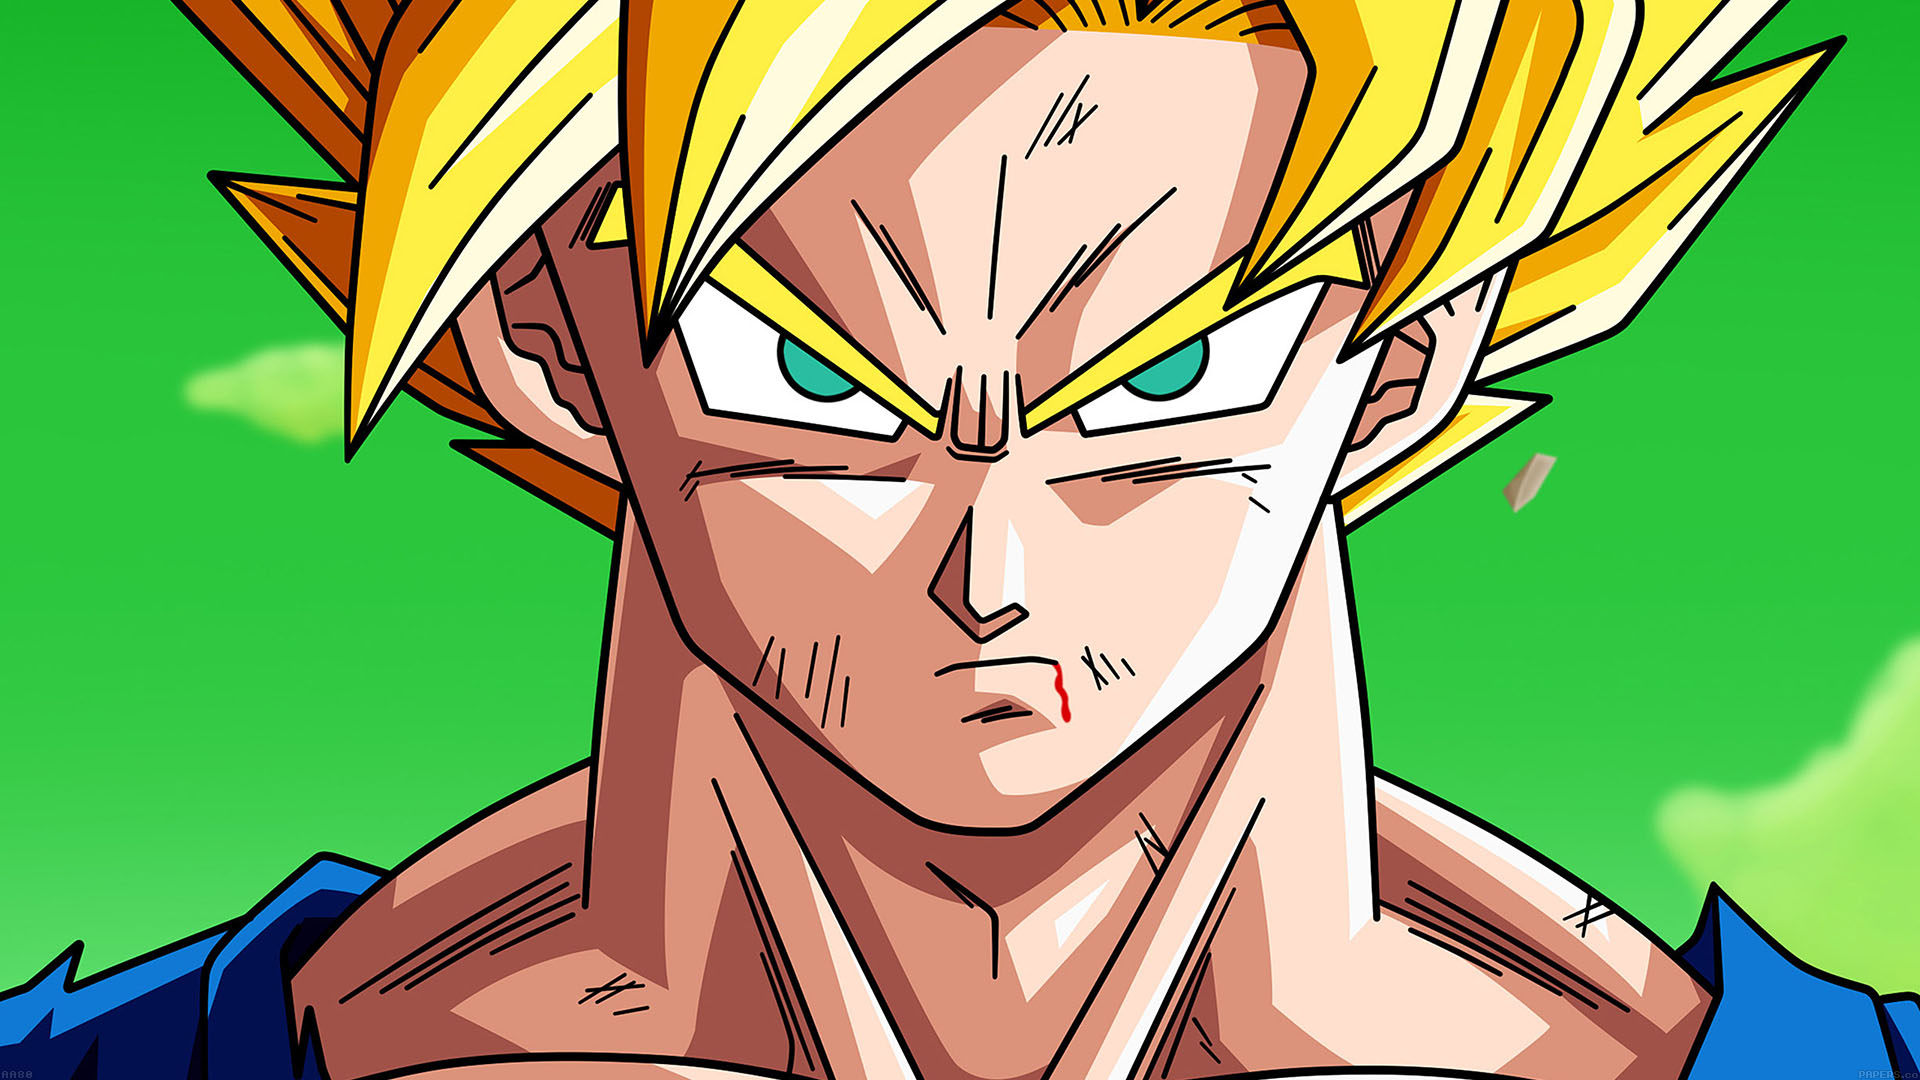 goku full hd wallpaper,anime,cartoon,forehead,fictional character,dragon ball